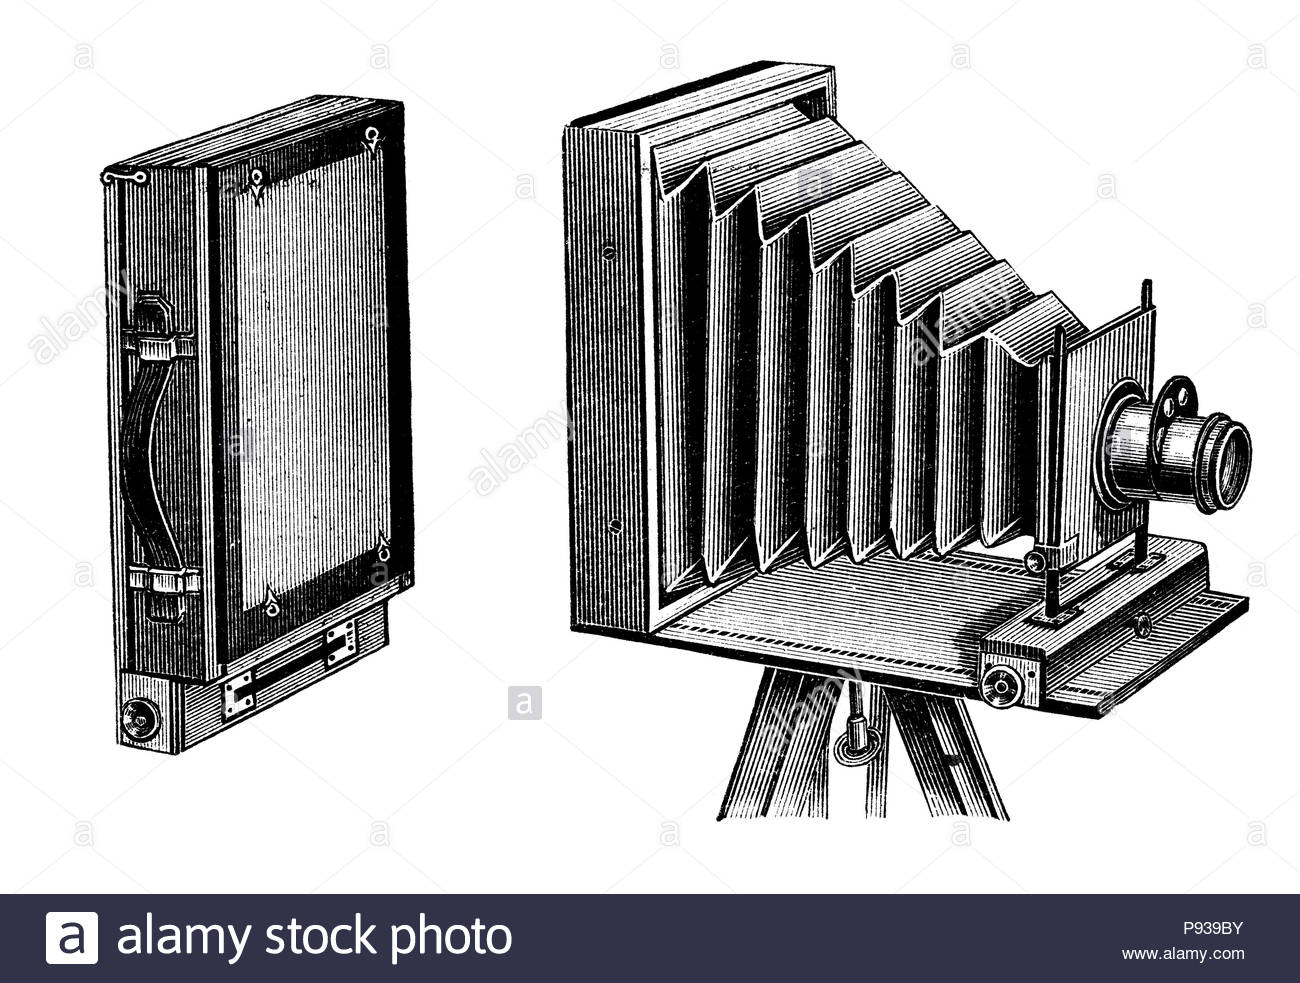 Vintage wooden travel photographic camera. Folding camera illustration published in Brockhaus Konversations Lexicon 14 edition - Stock Image